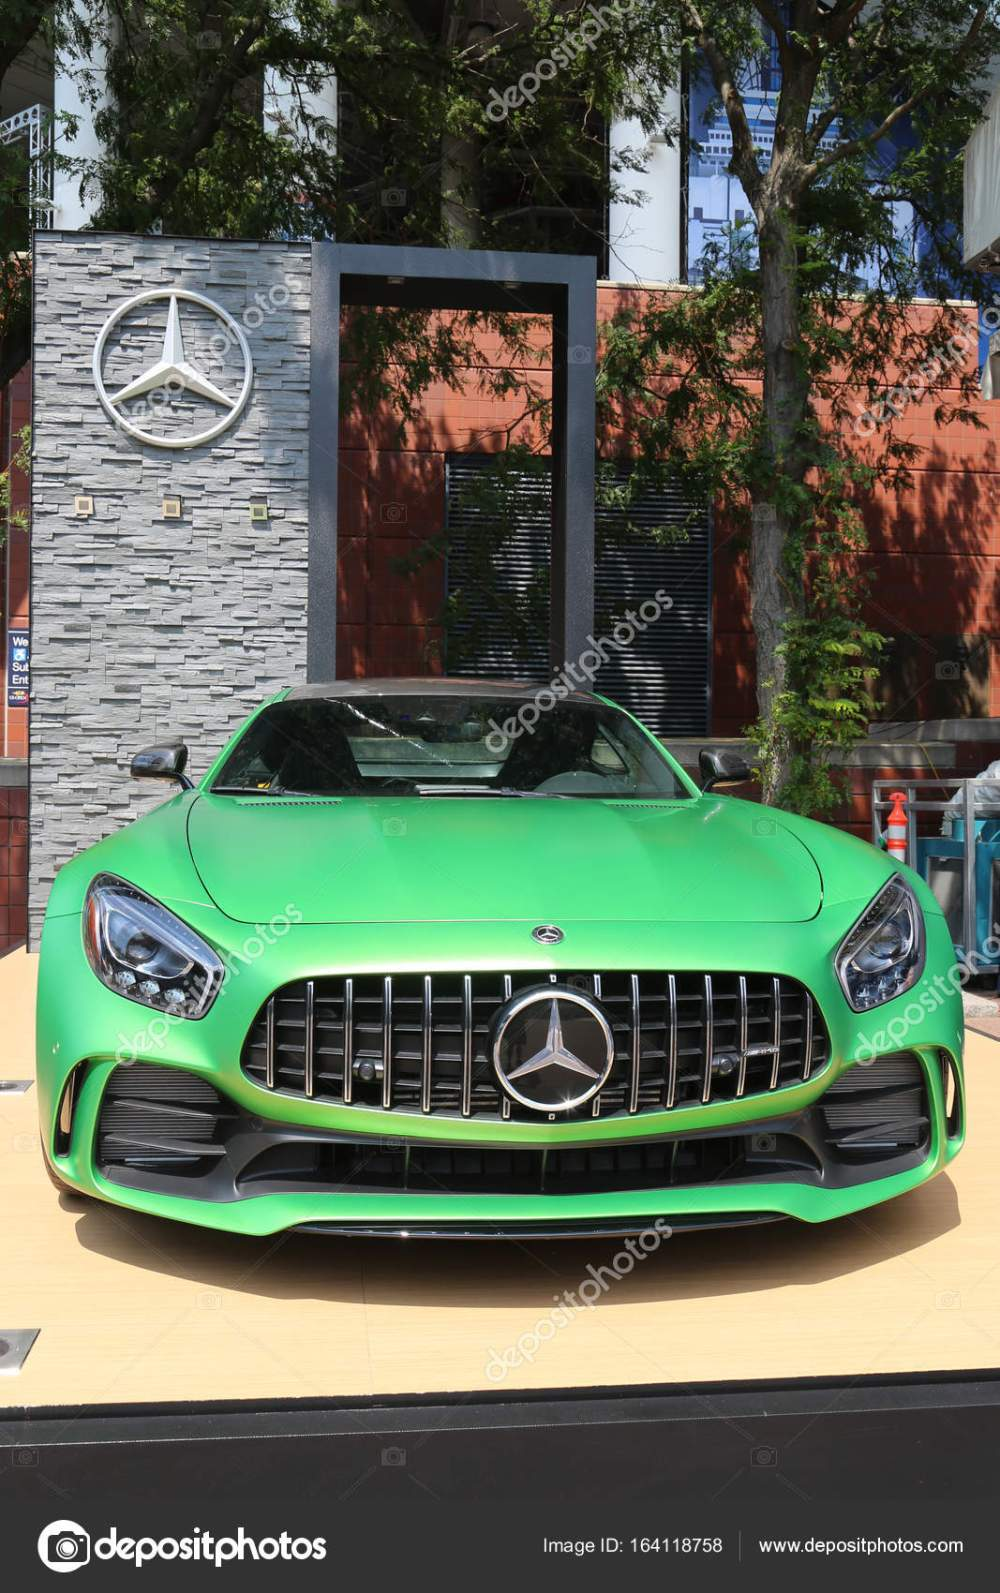 medium resolution of mercedes benz amg on display at national tennis center during us open 2017 stock